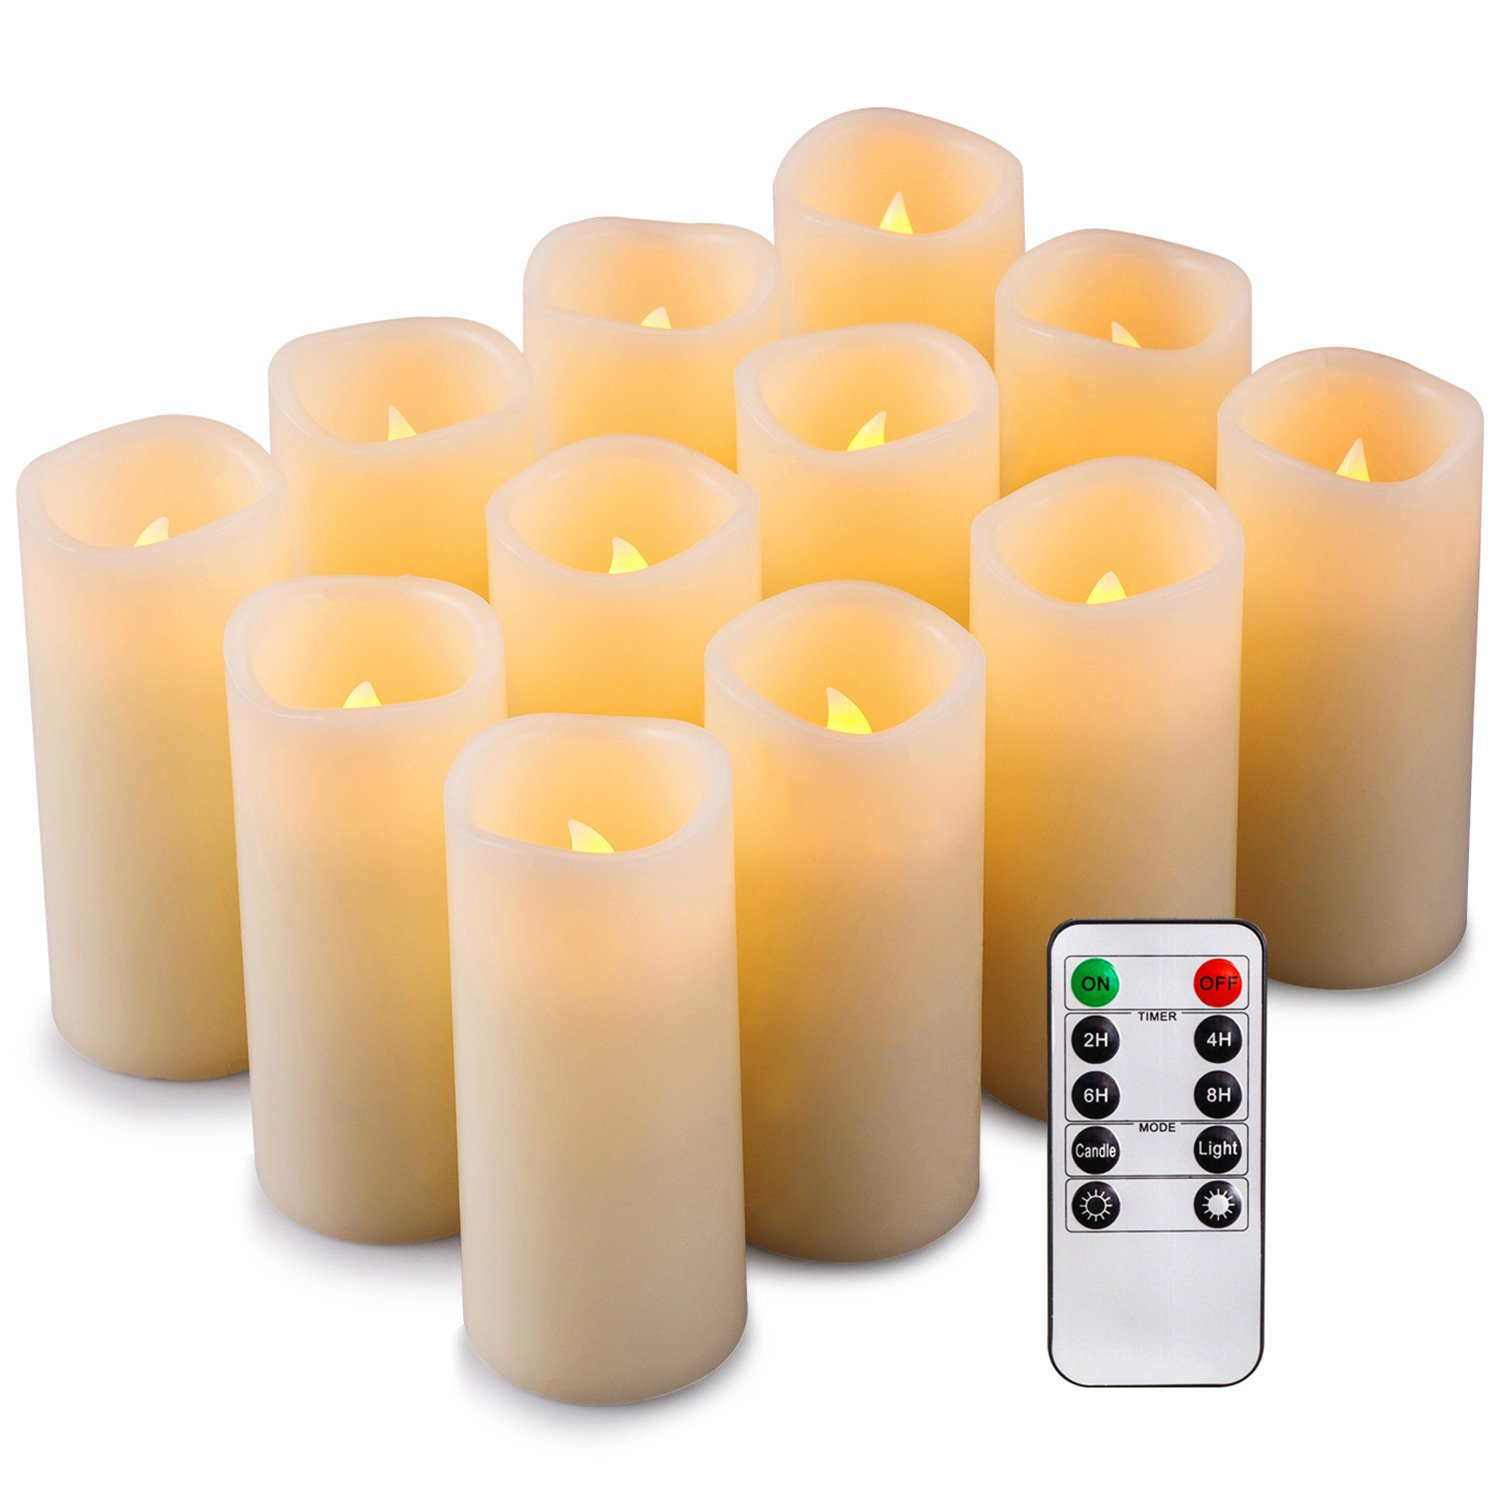 12Pcs LED Electronic Flameless Candles Lights with Remote Control for Party Wedding Decor Yellow light